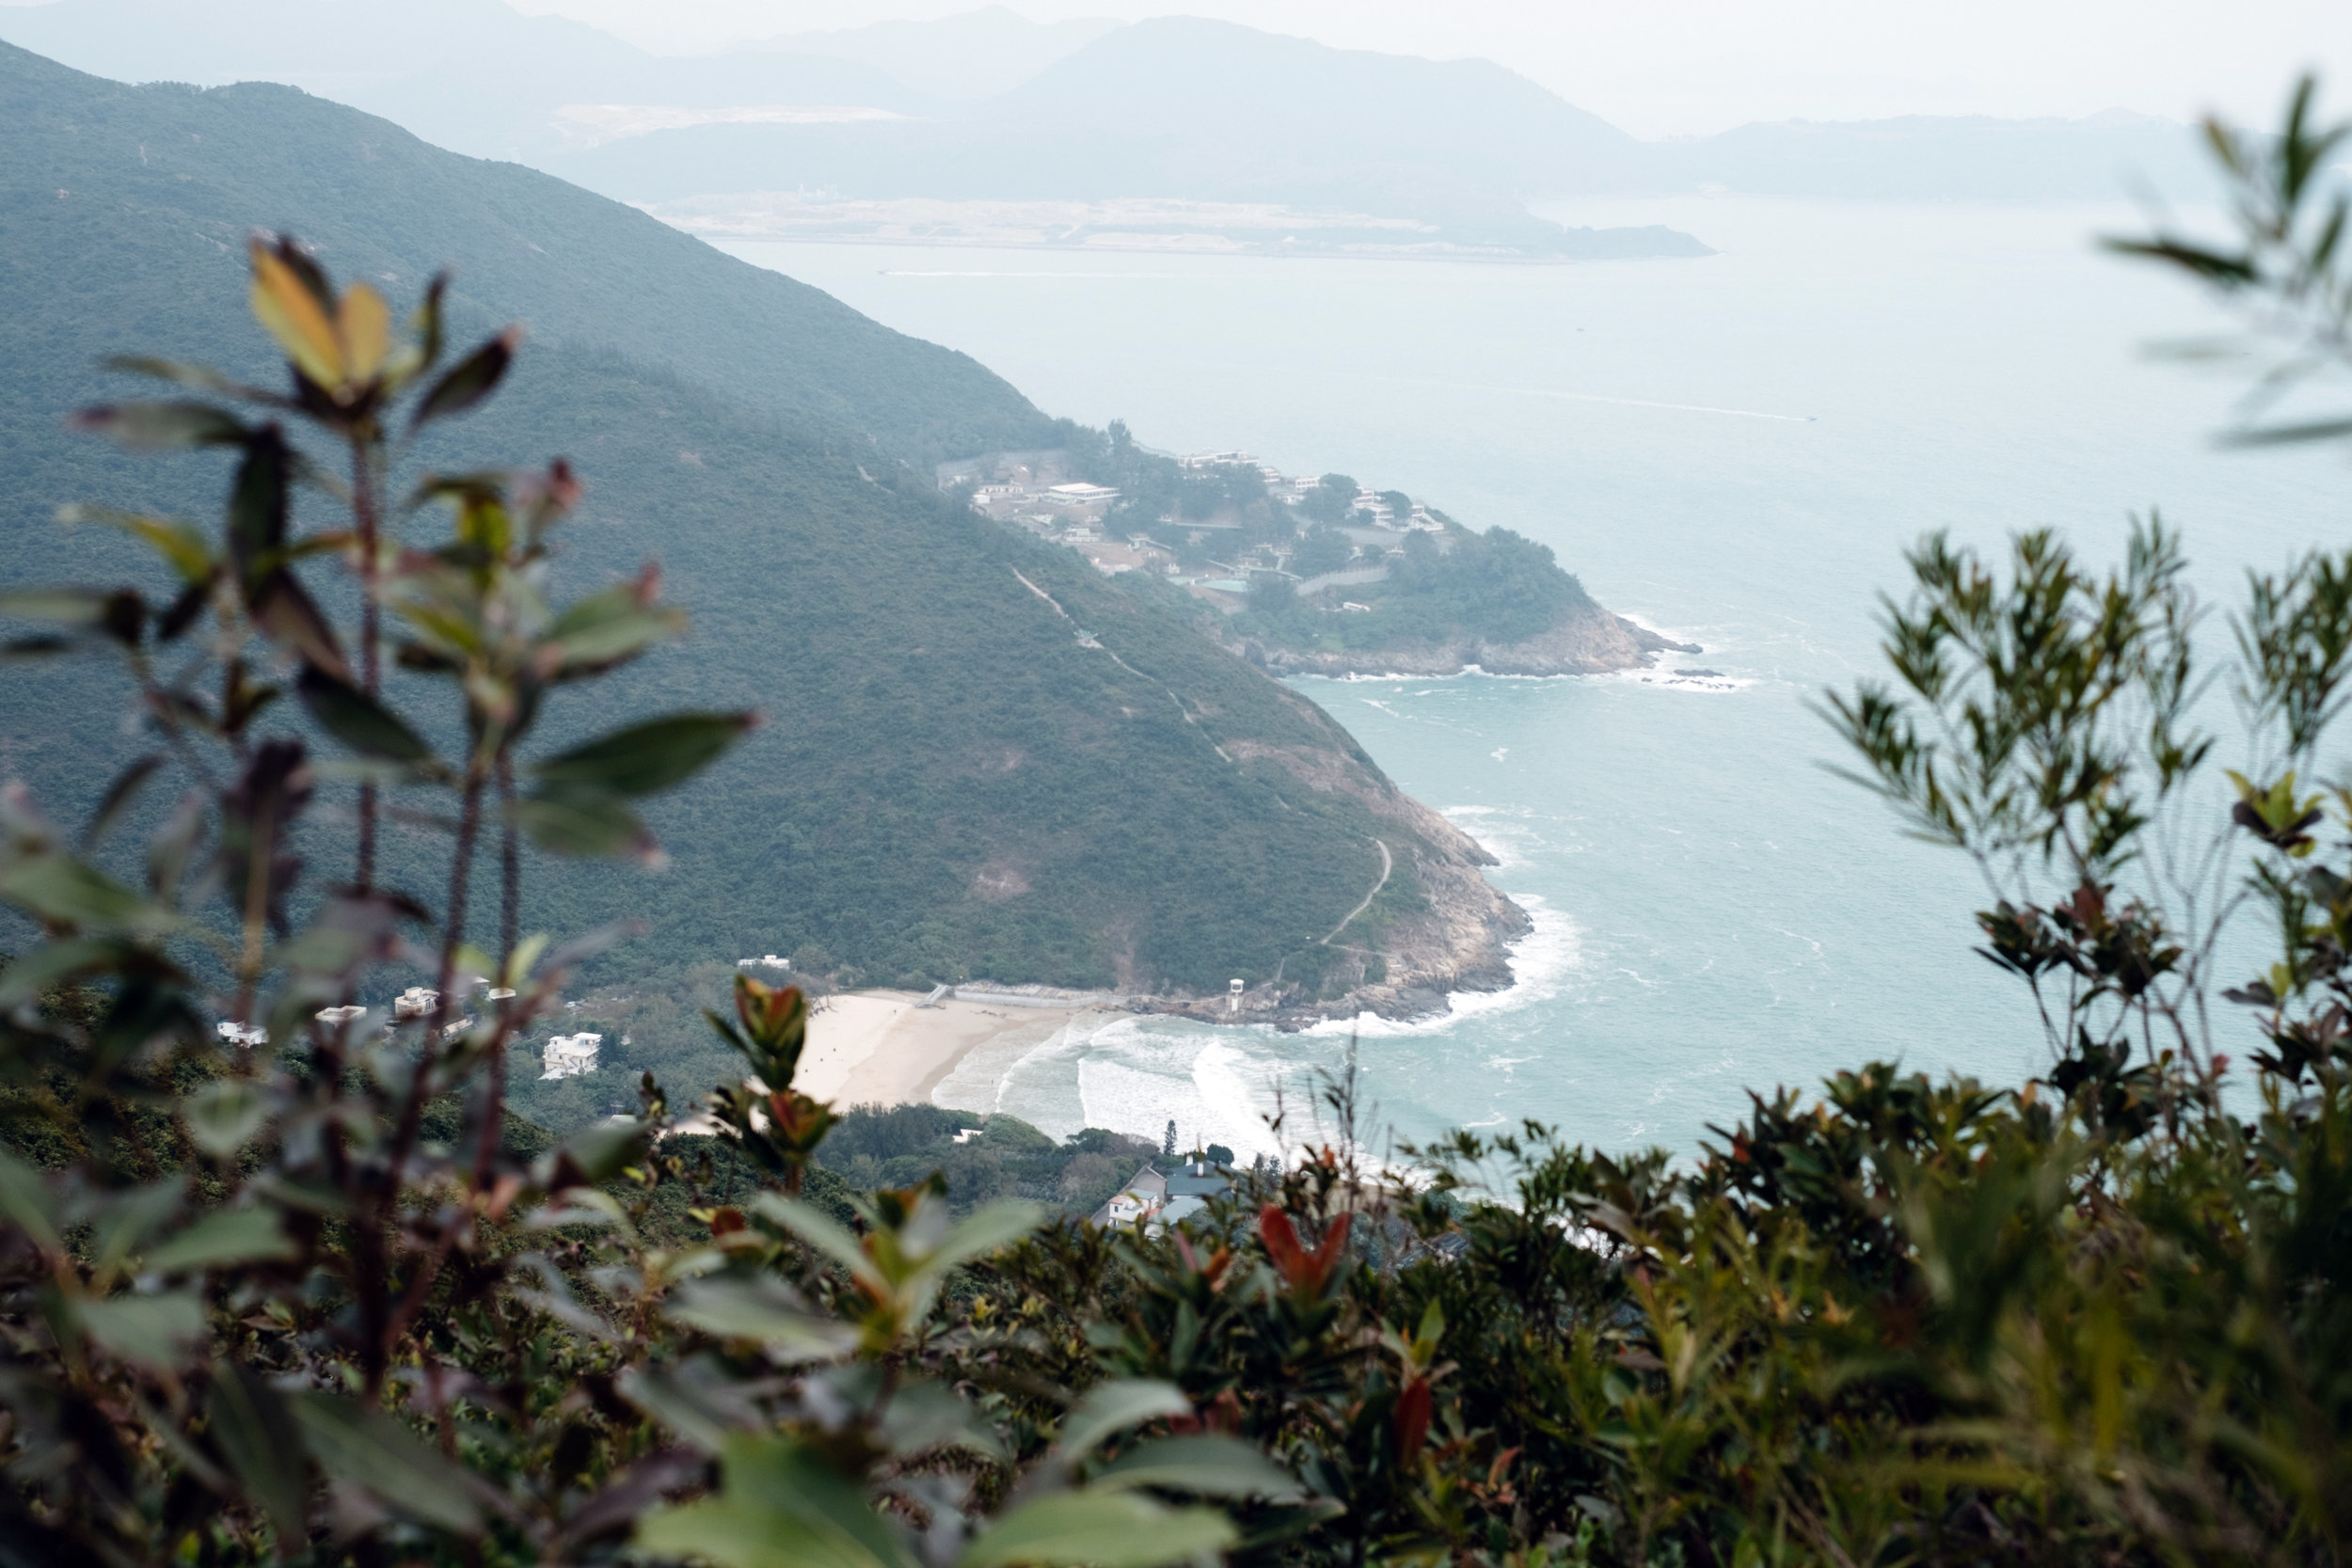 The view of the ocean from the Dragon's Back Trail in Hong Kong